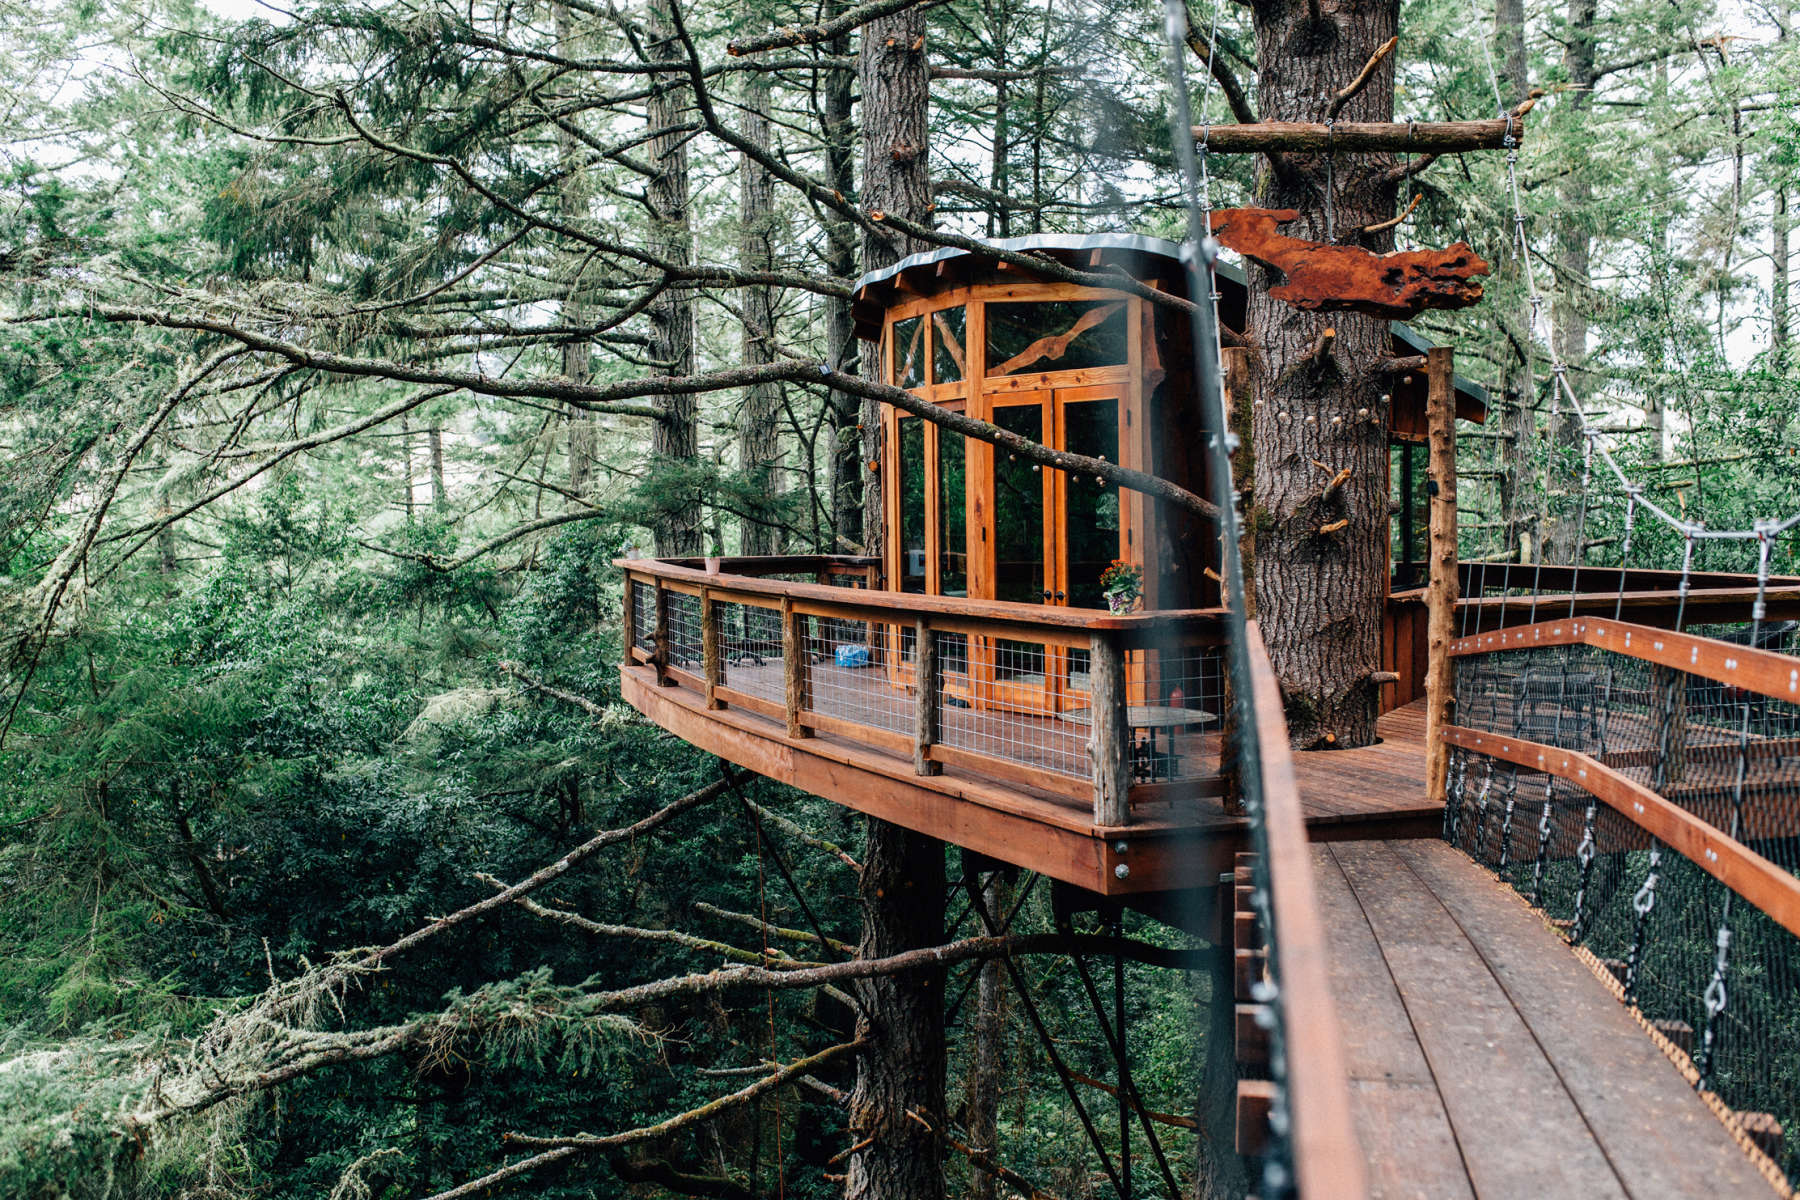 Treehouse eagle's nest treehouse farmstay, salmon creek ranch, ca: 65